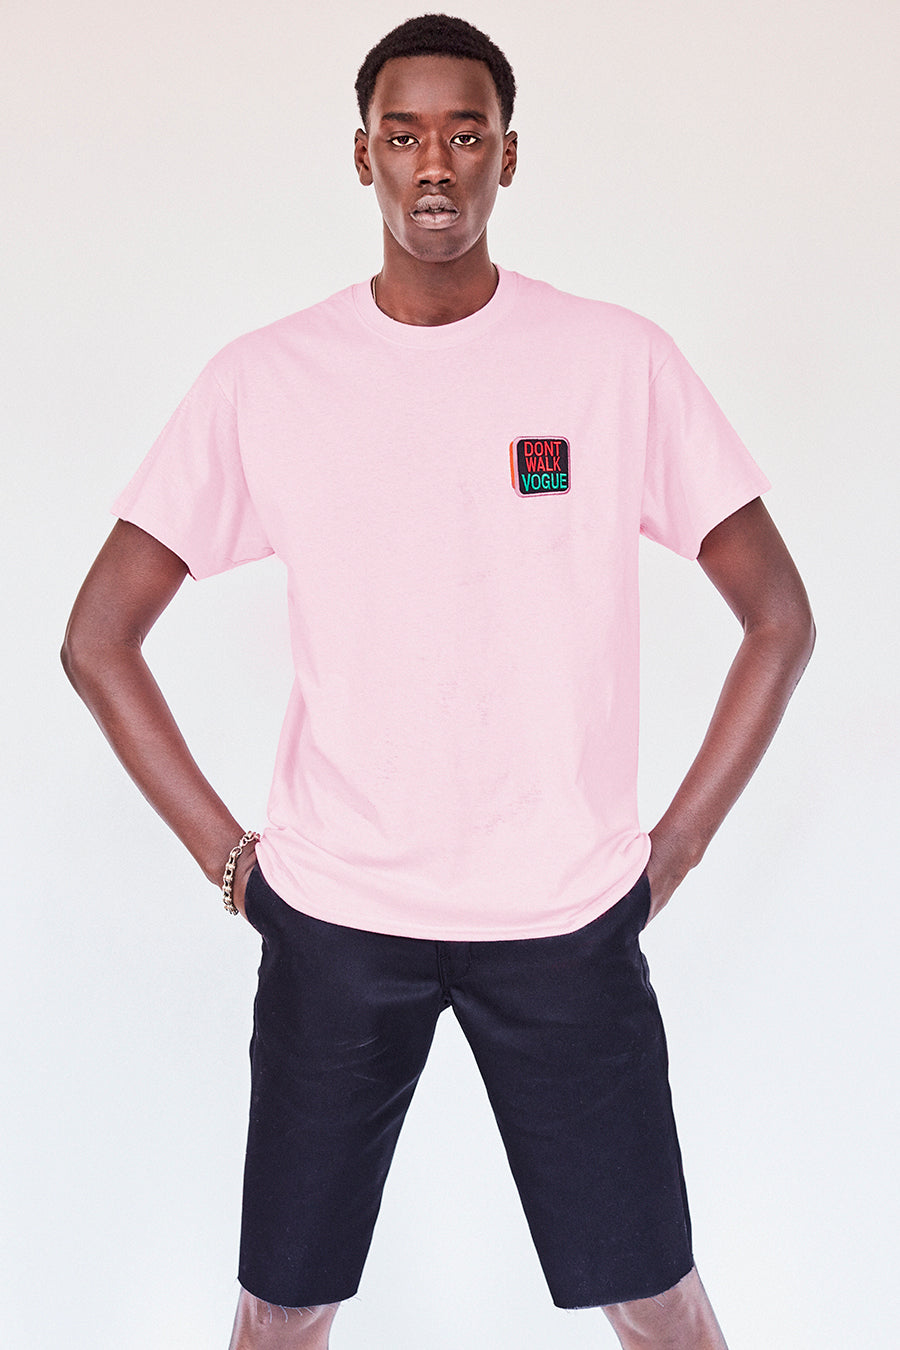 The Dont Walk Vogue Tee- Pale Pink